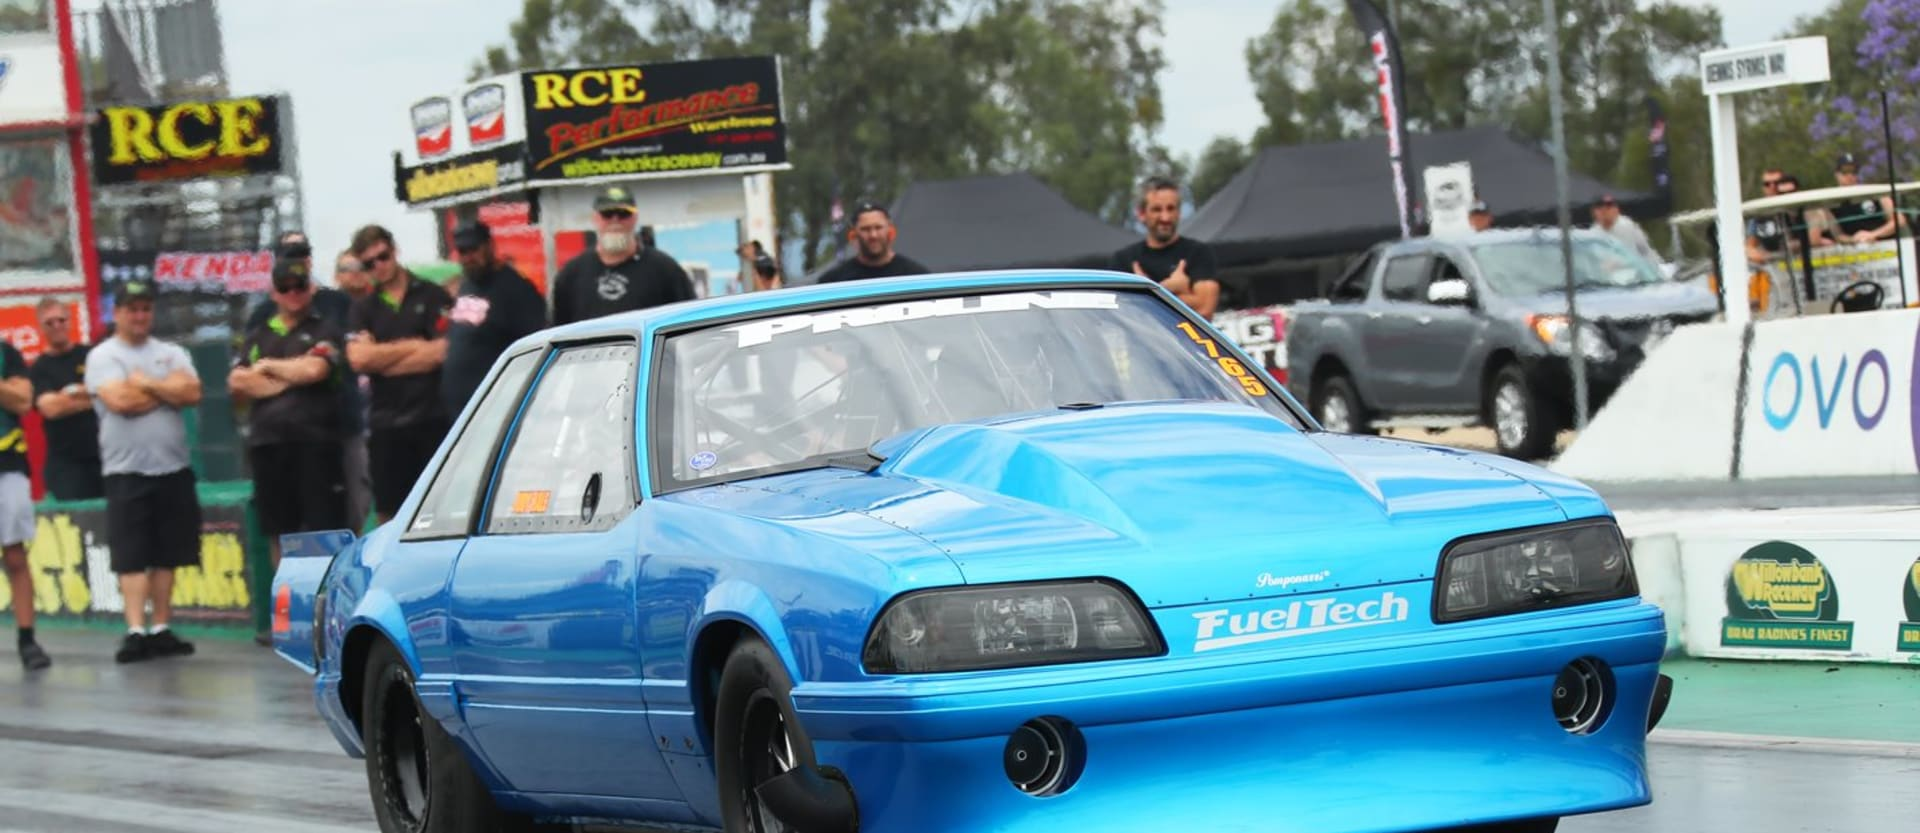 Ford Mustang foxbody Proline